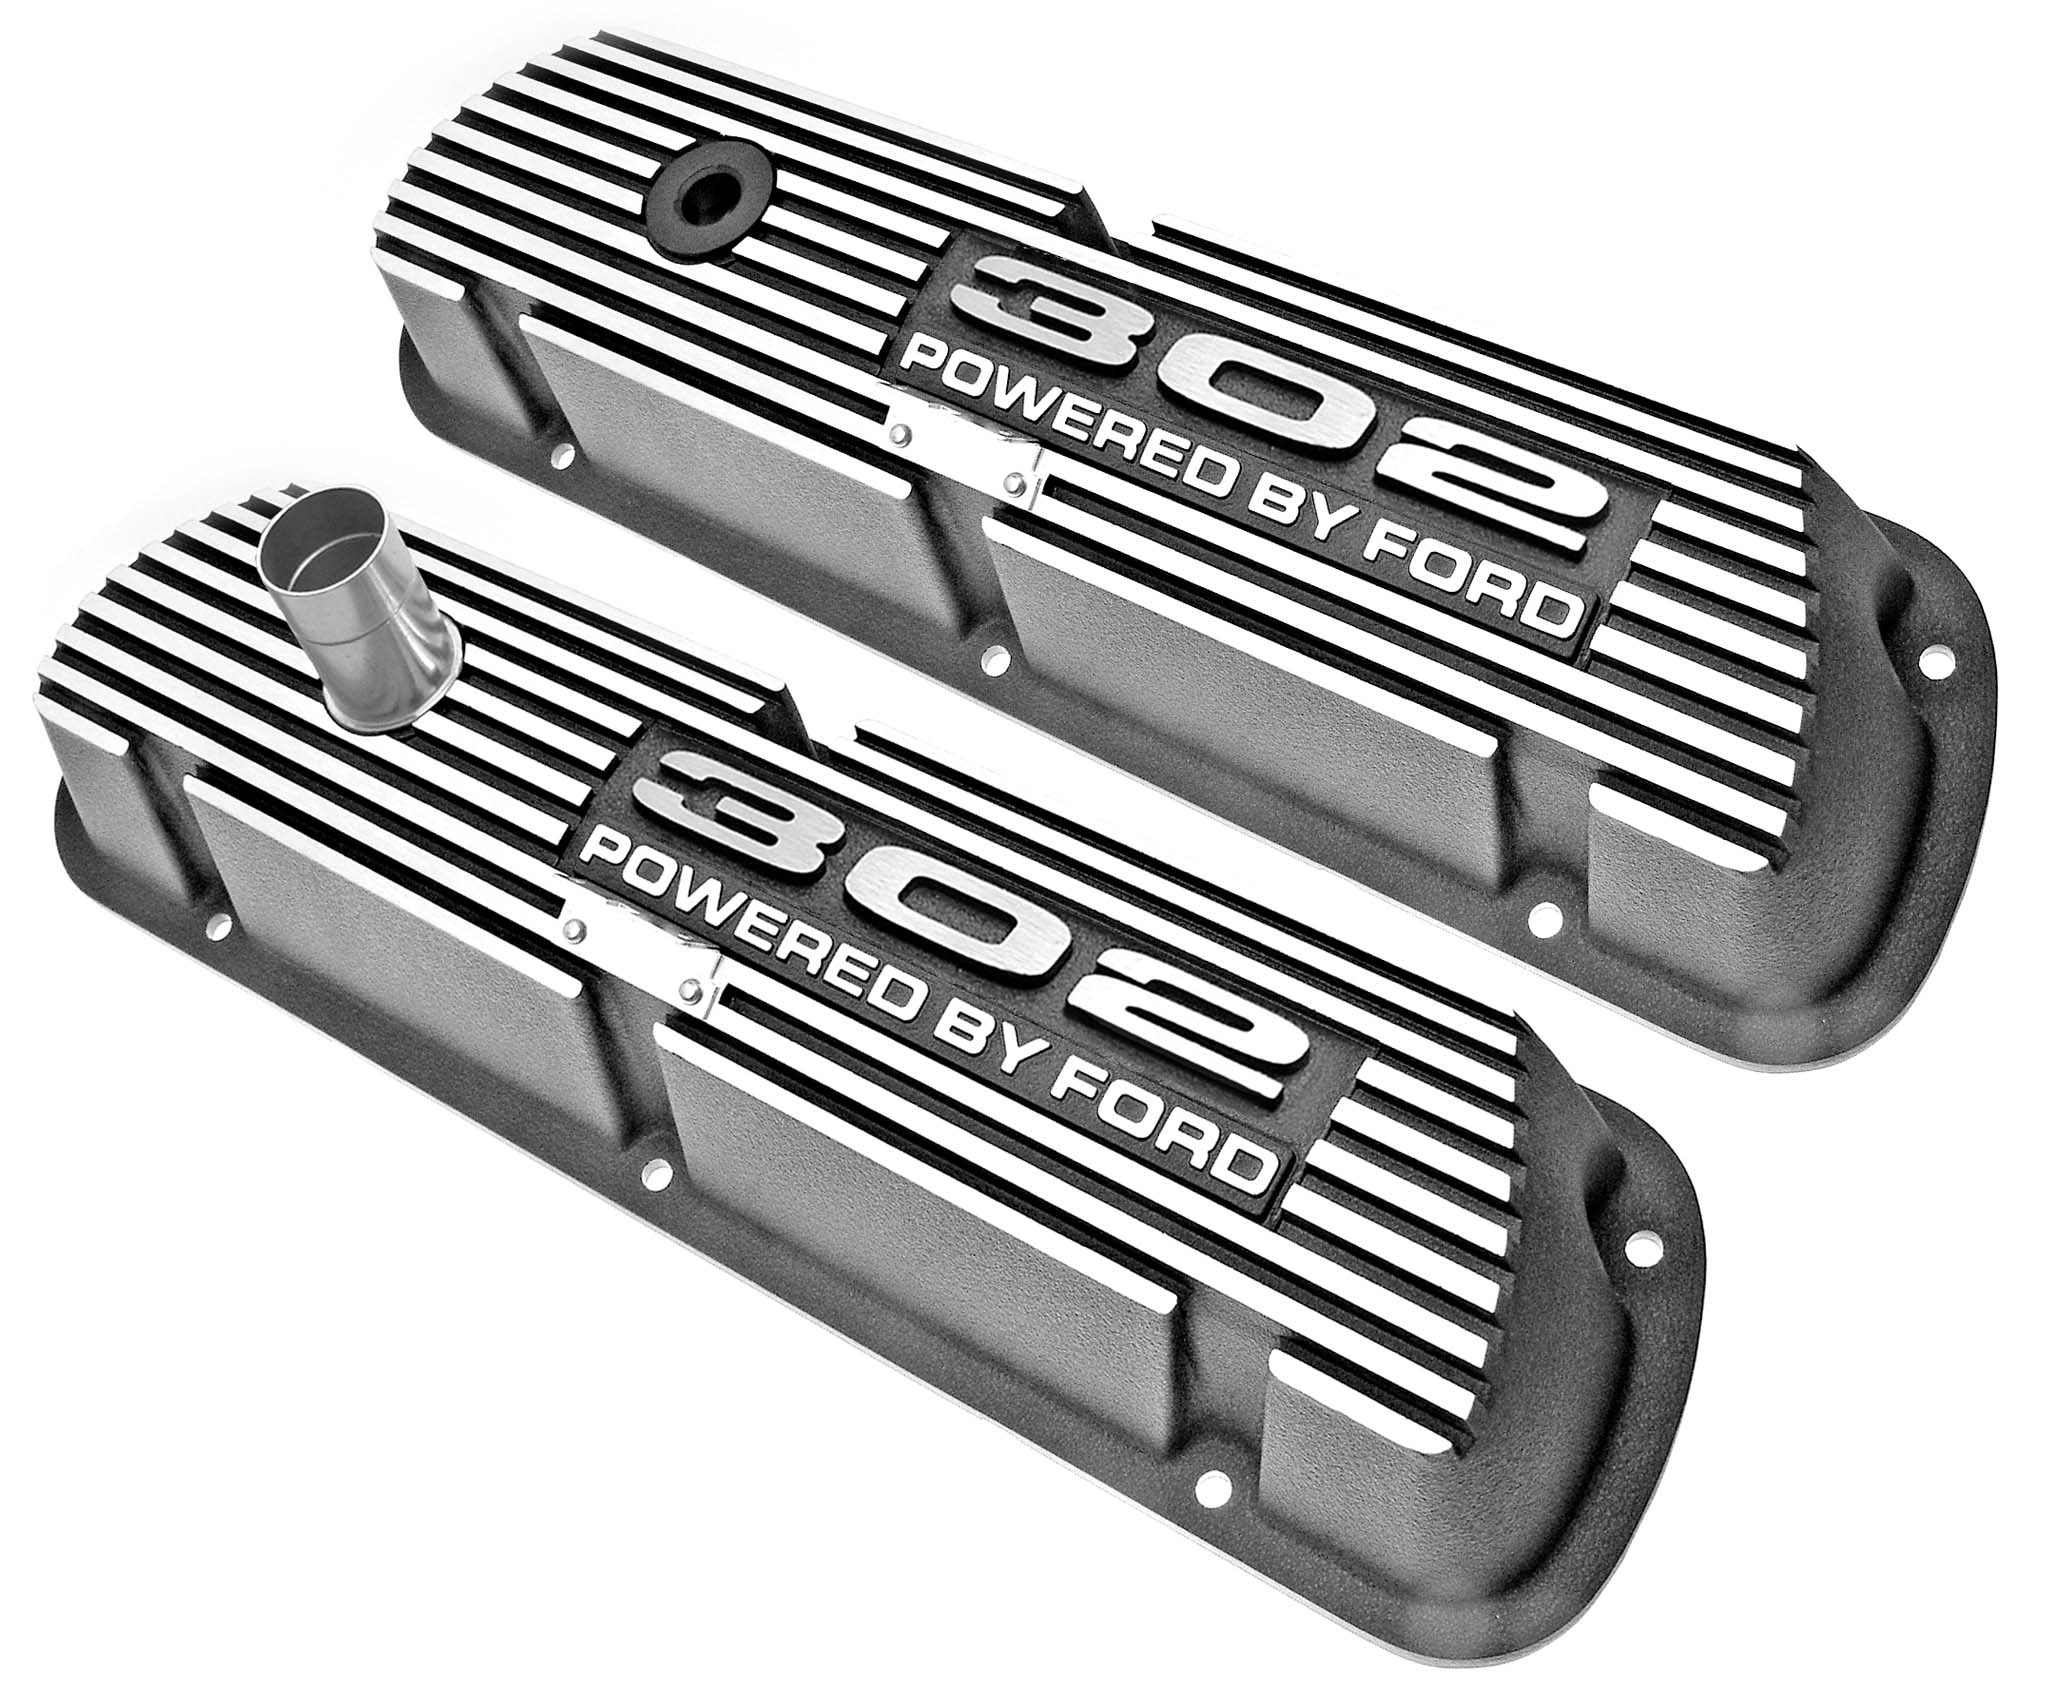 Aluminum Valve Covers - Black w/302 Engine Script